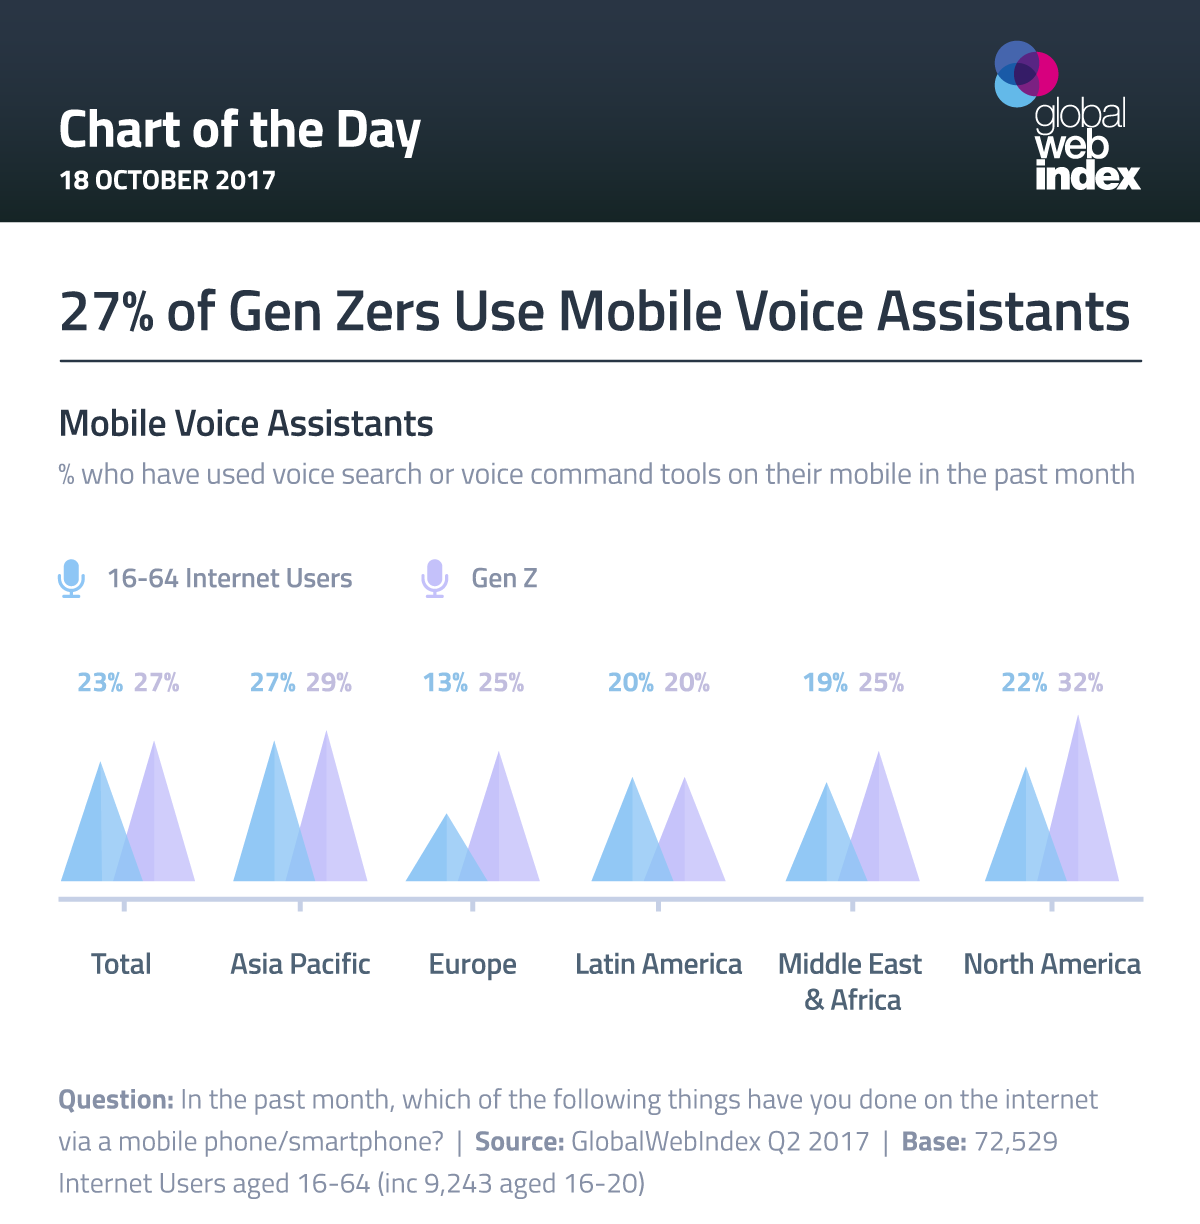 27% of Gen Zers Use Mobile Voice Assistants